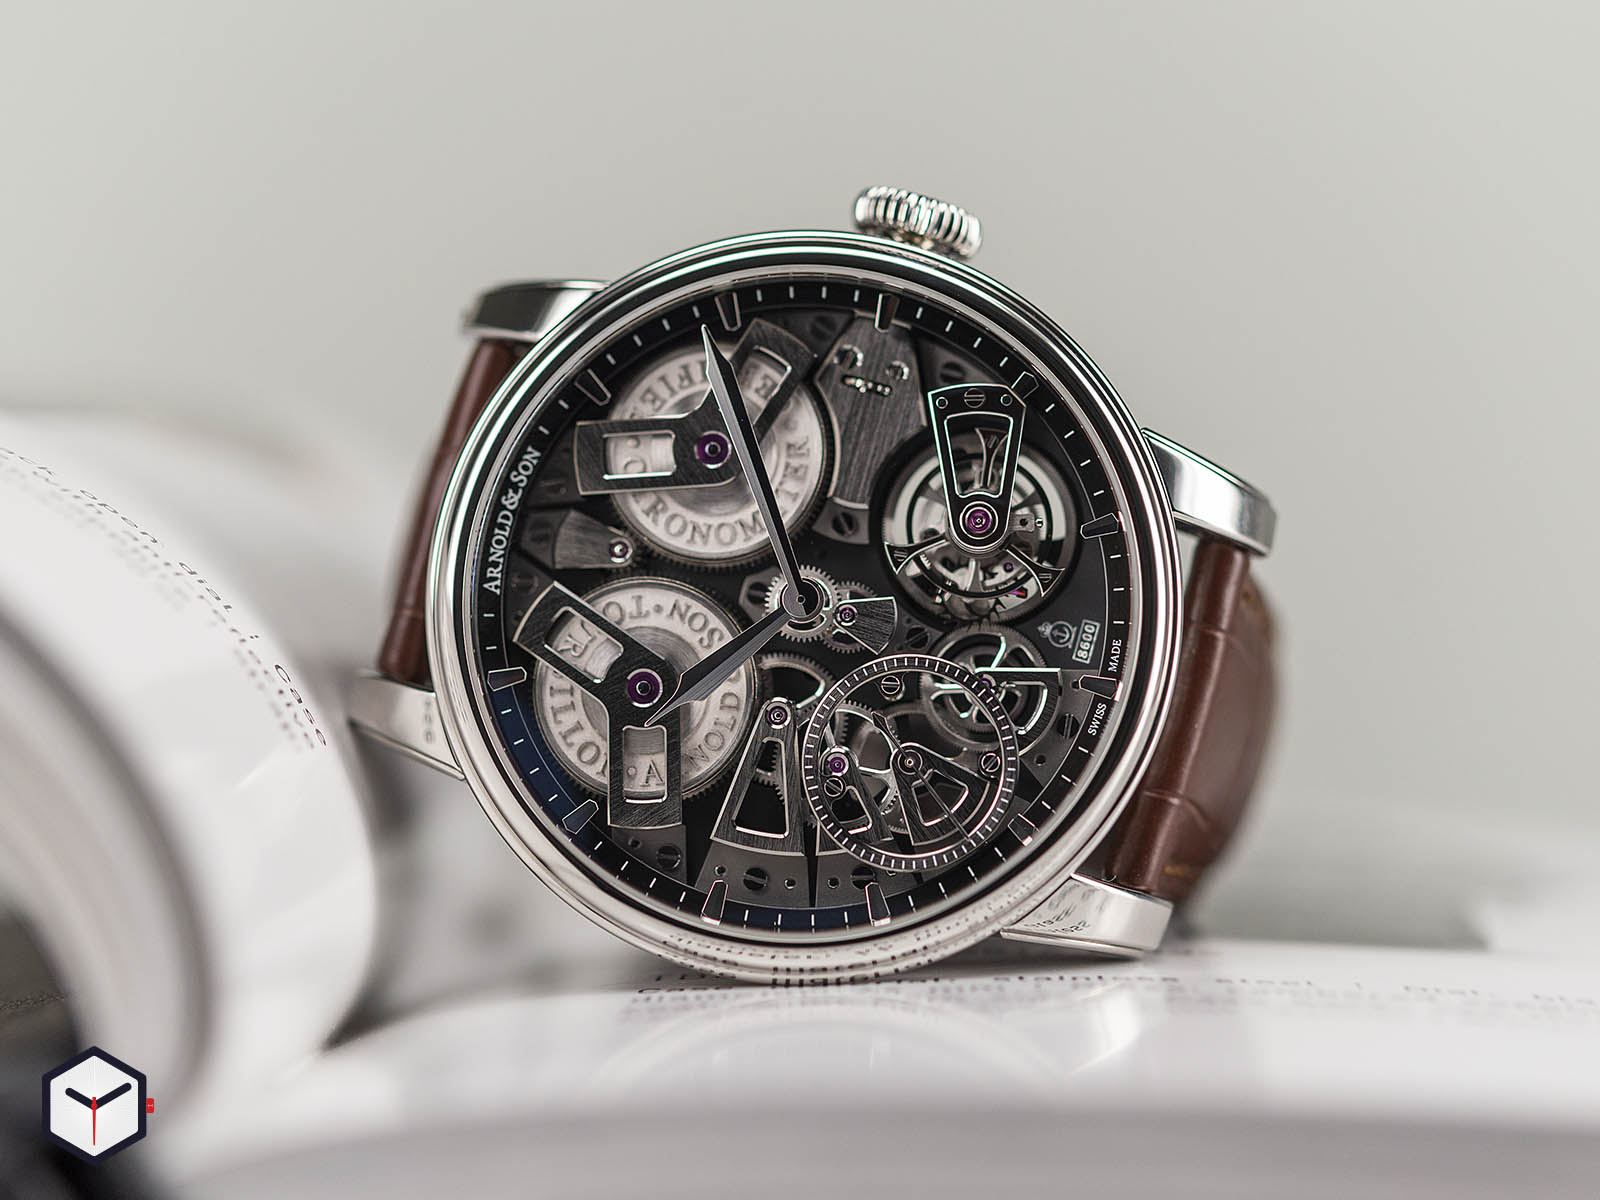 1etas-b01a-c113s-arnold-son-tourbillon-chronometer-no-36-tribute-edition-steel-1.jpg